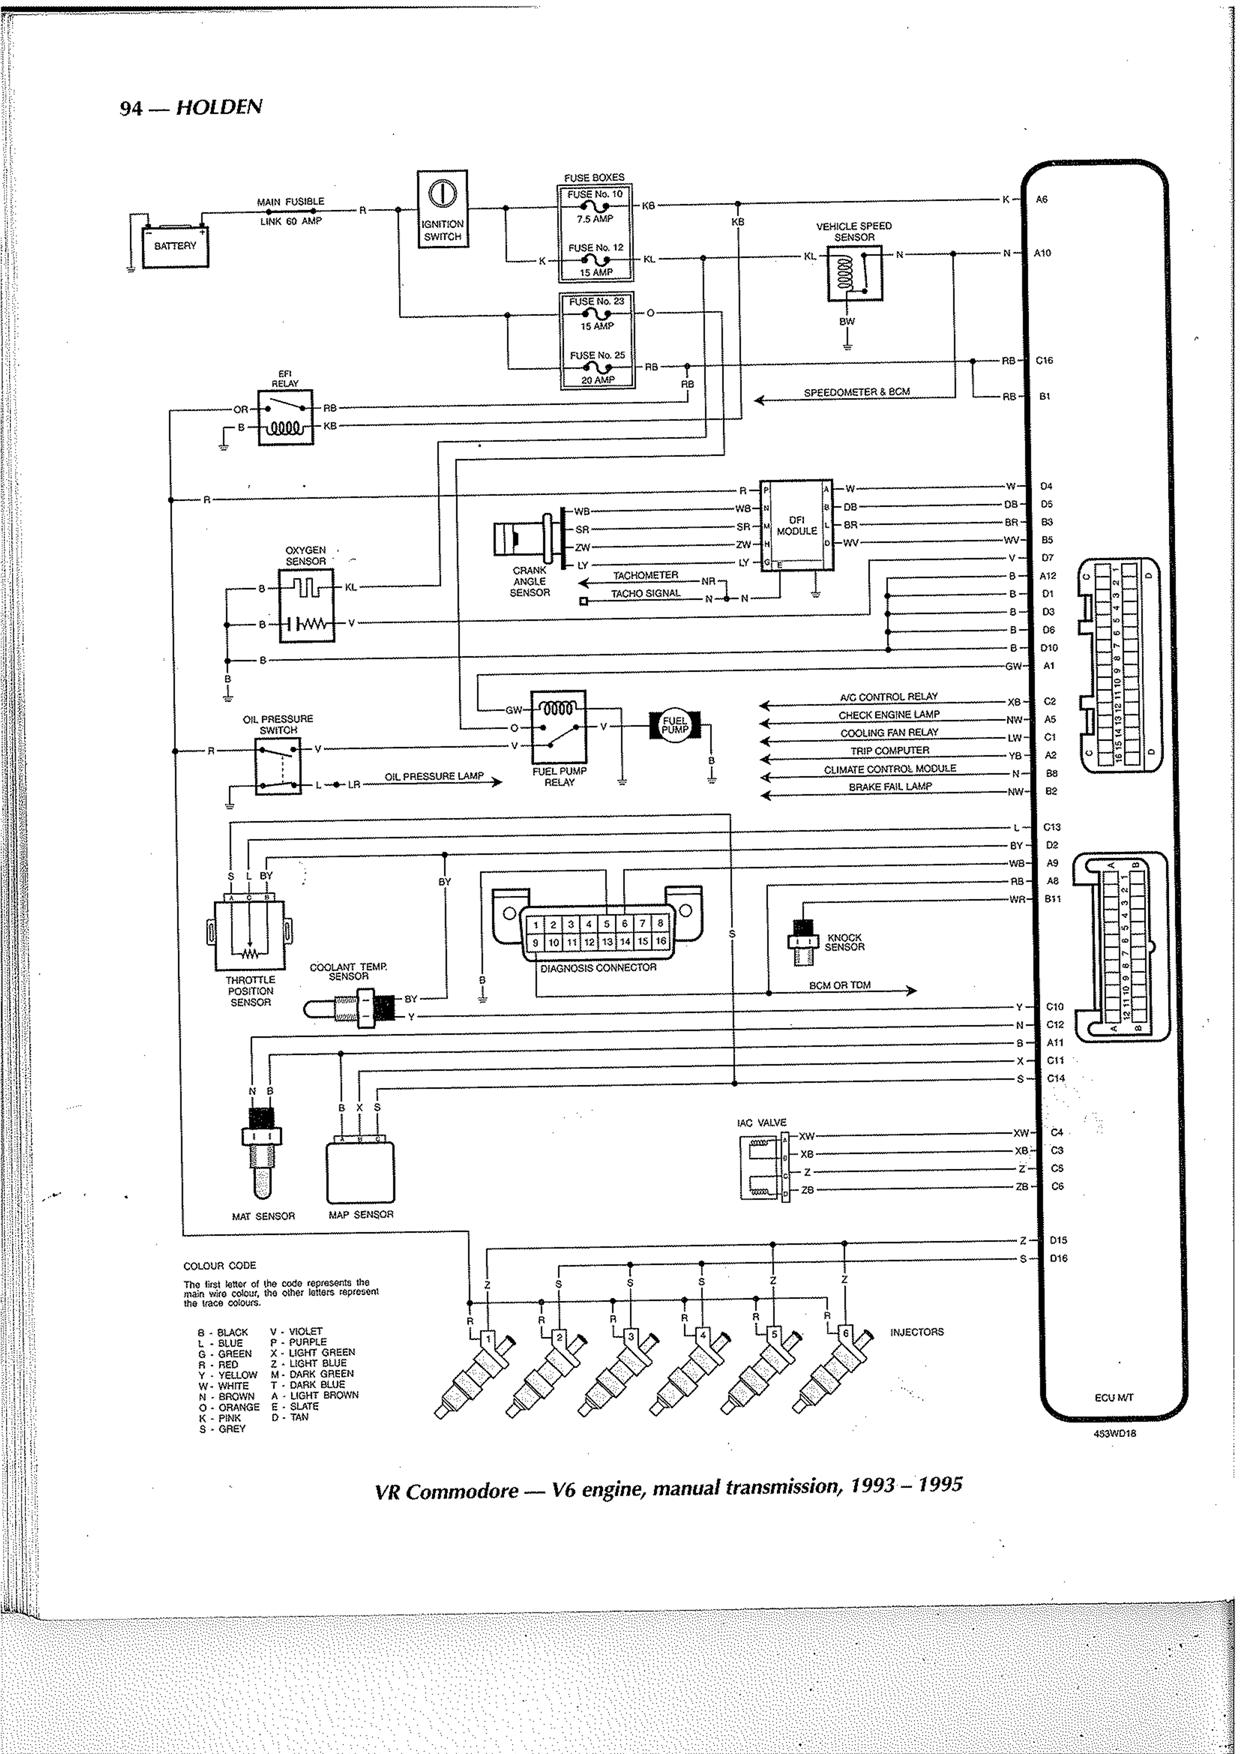 2009 11 02_022627_vrmanual vs commodore bcm wiring diagram efcaviation com vz bcm wiring diagram at panicattacktreatment.co